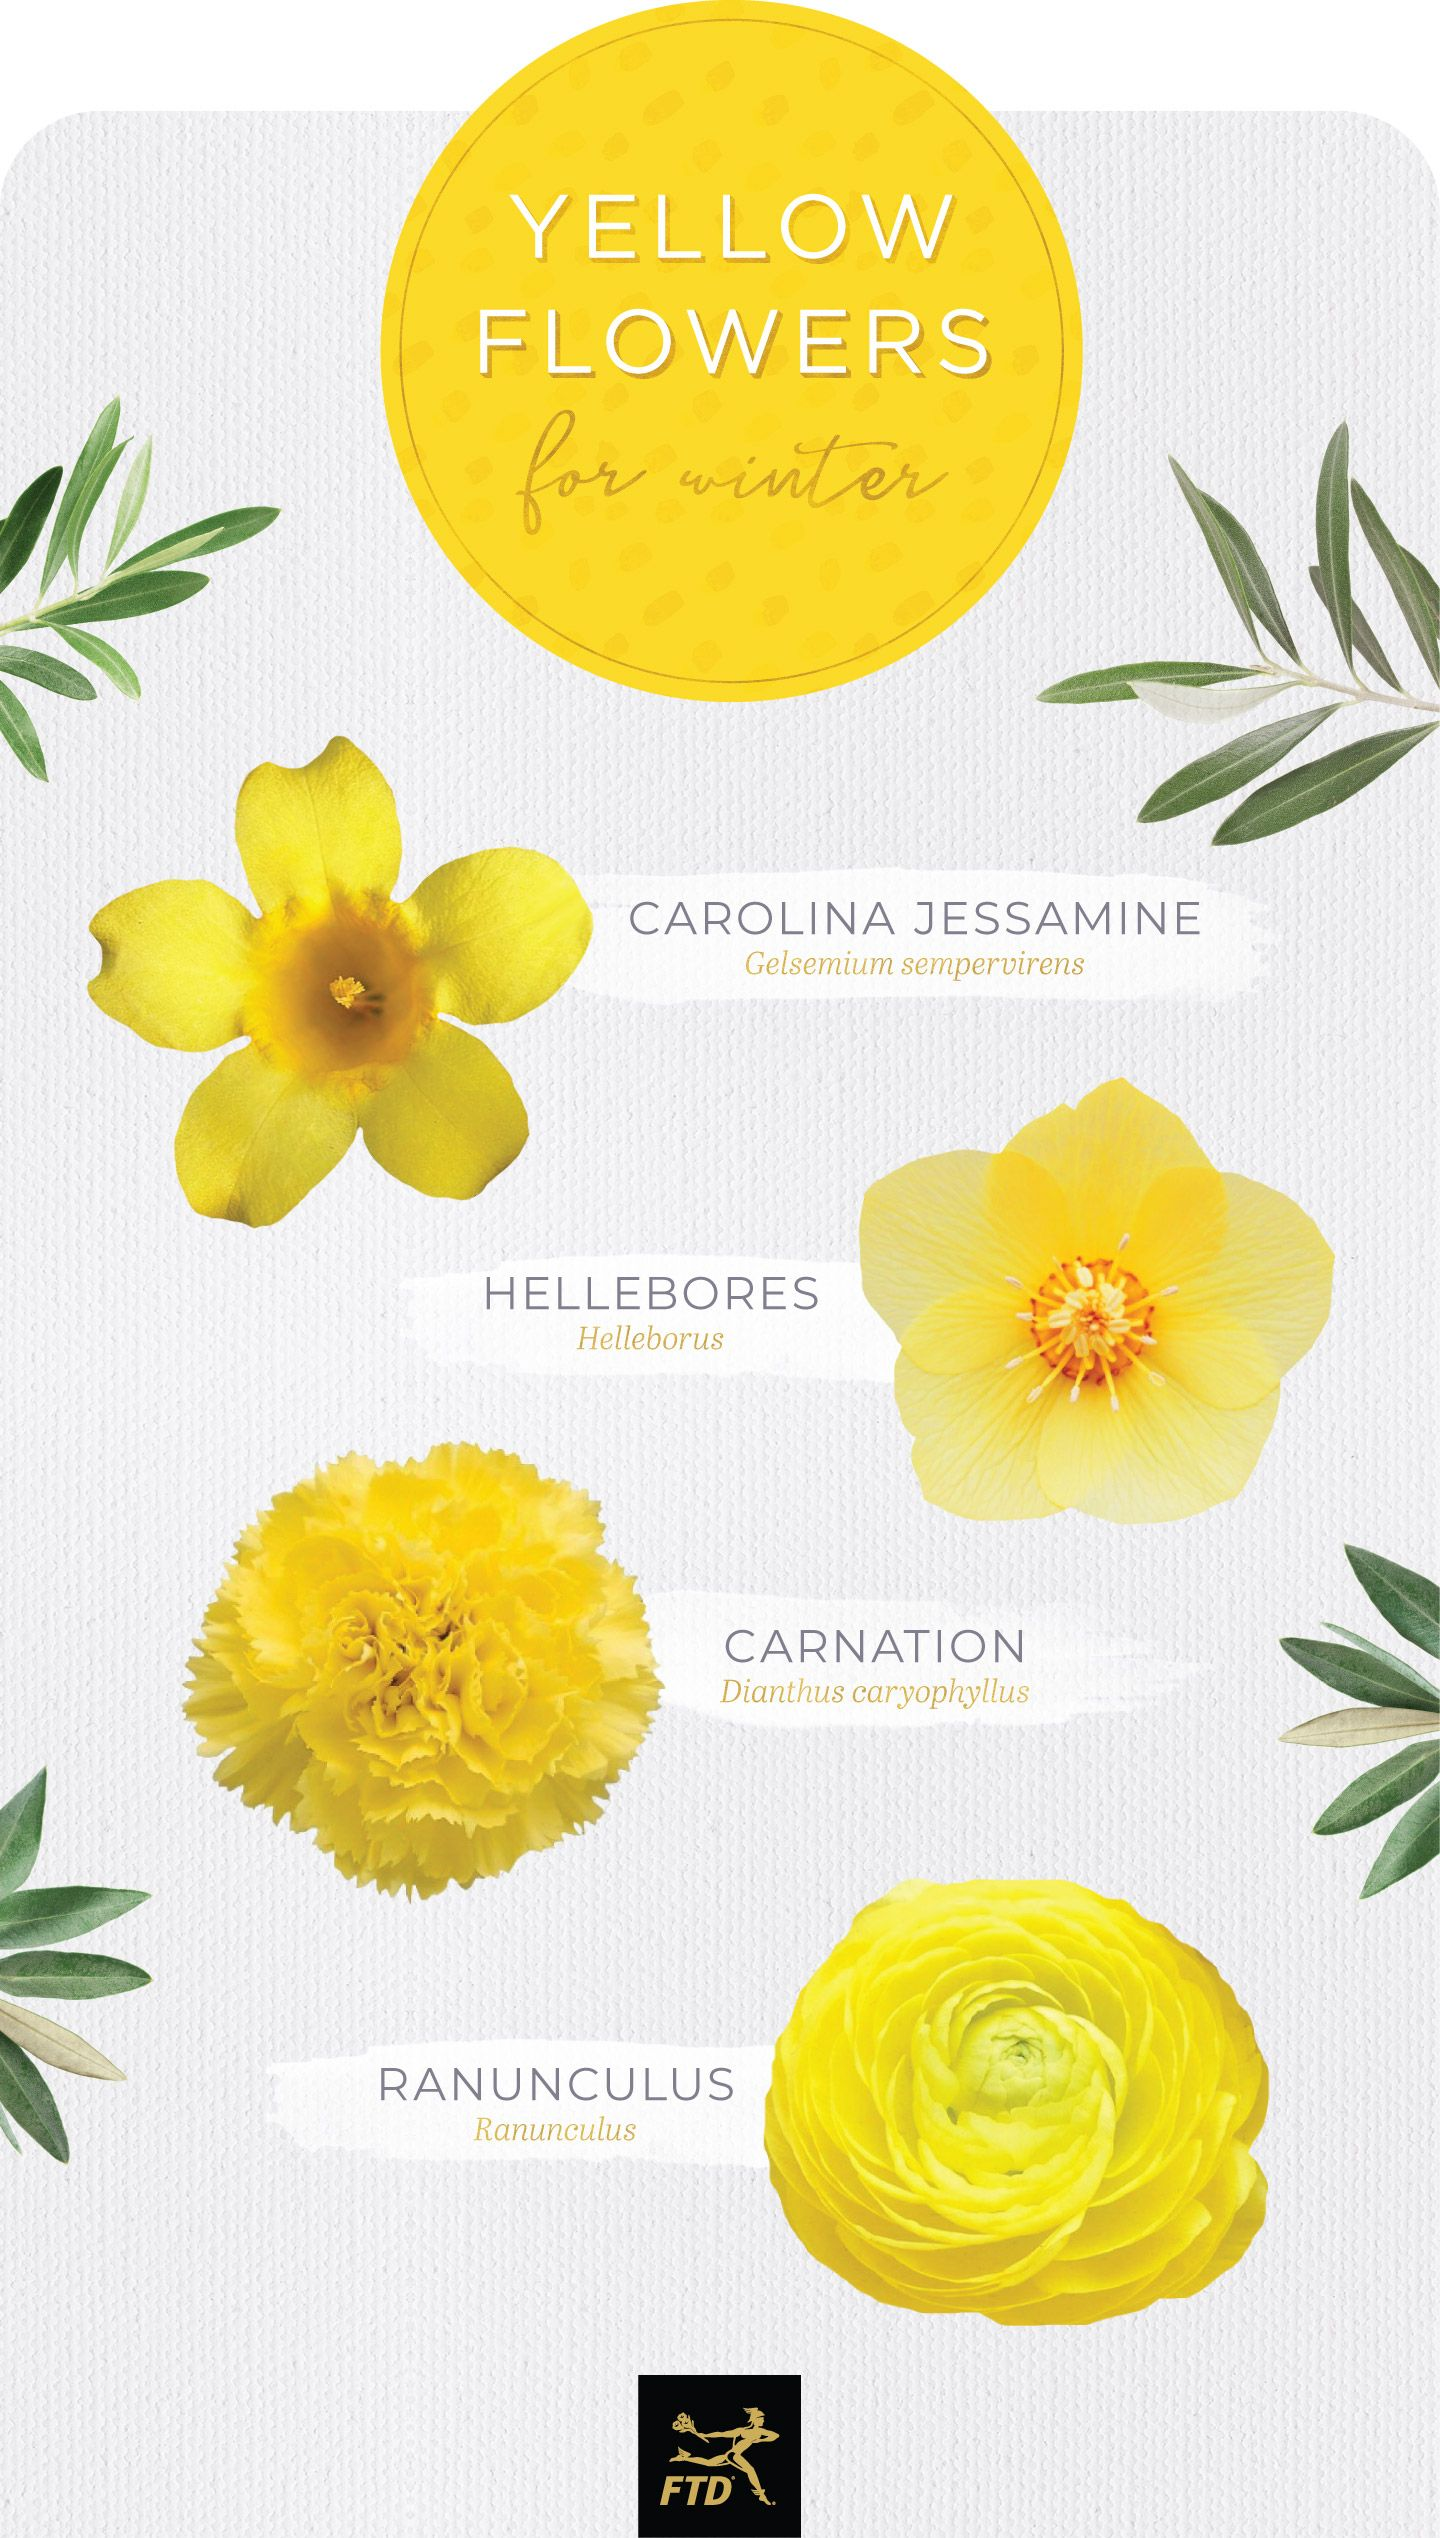 30 Types Of Yellow Flowers Ftd Com Yellow Flowers Small Yellow Flowers Types Of Flowers